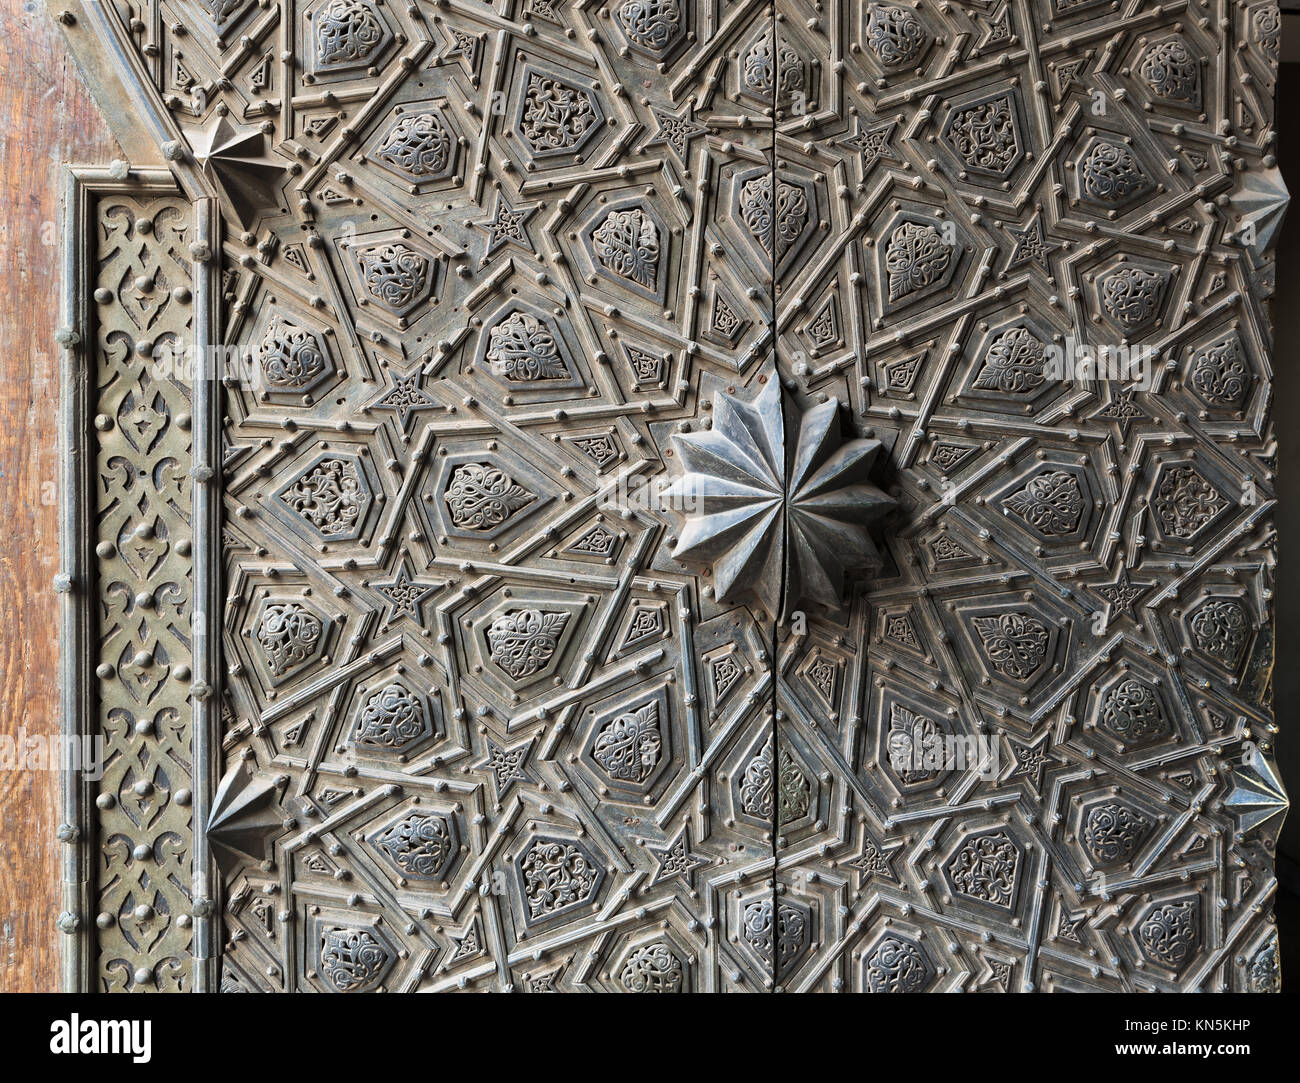 Ornaments of the bronze-plate ornate main gate of Manial Palace of Prince Mohammed Ali Tewfik, Cairo, Egypt - Stock Image